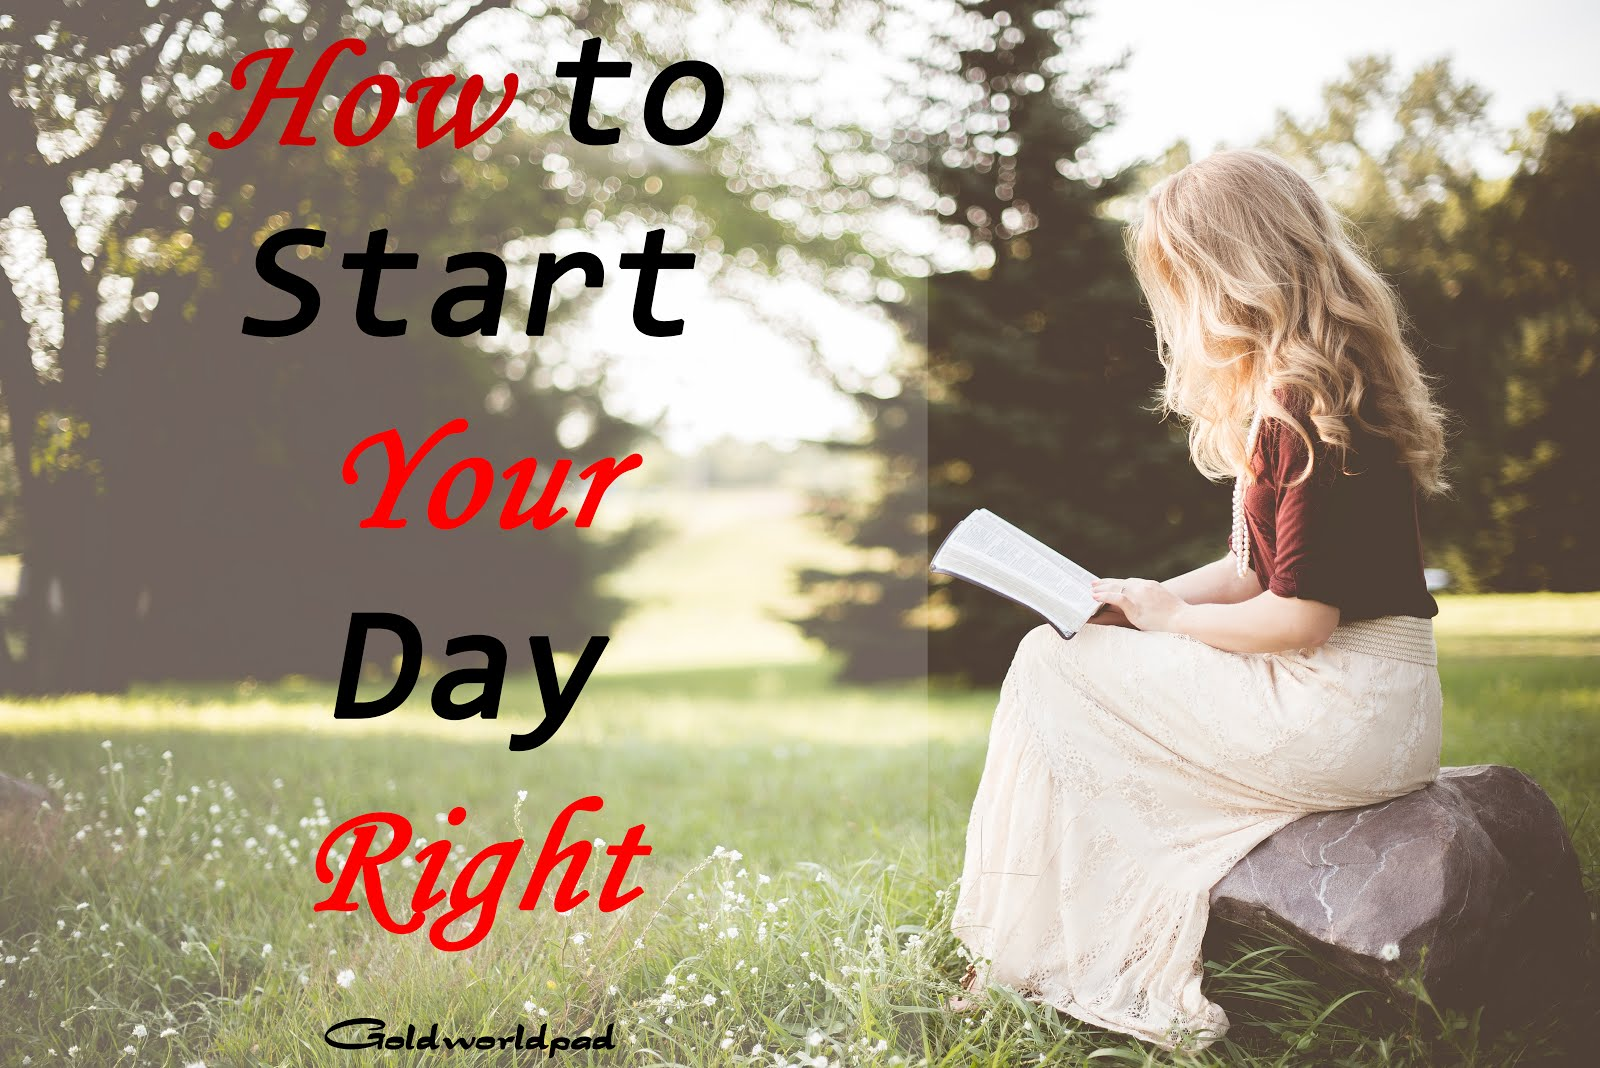 Four things to do to start your day right